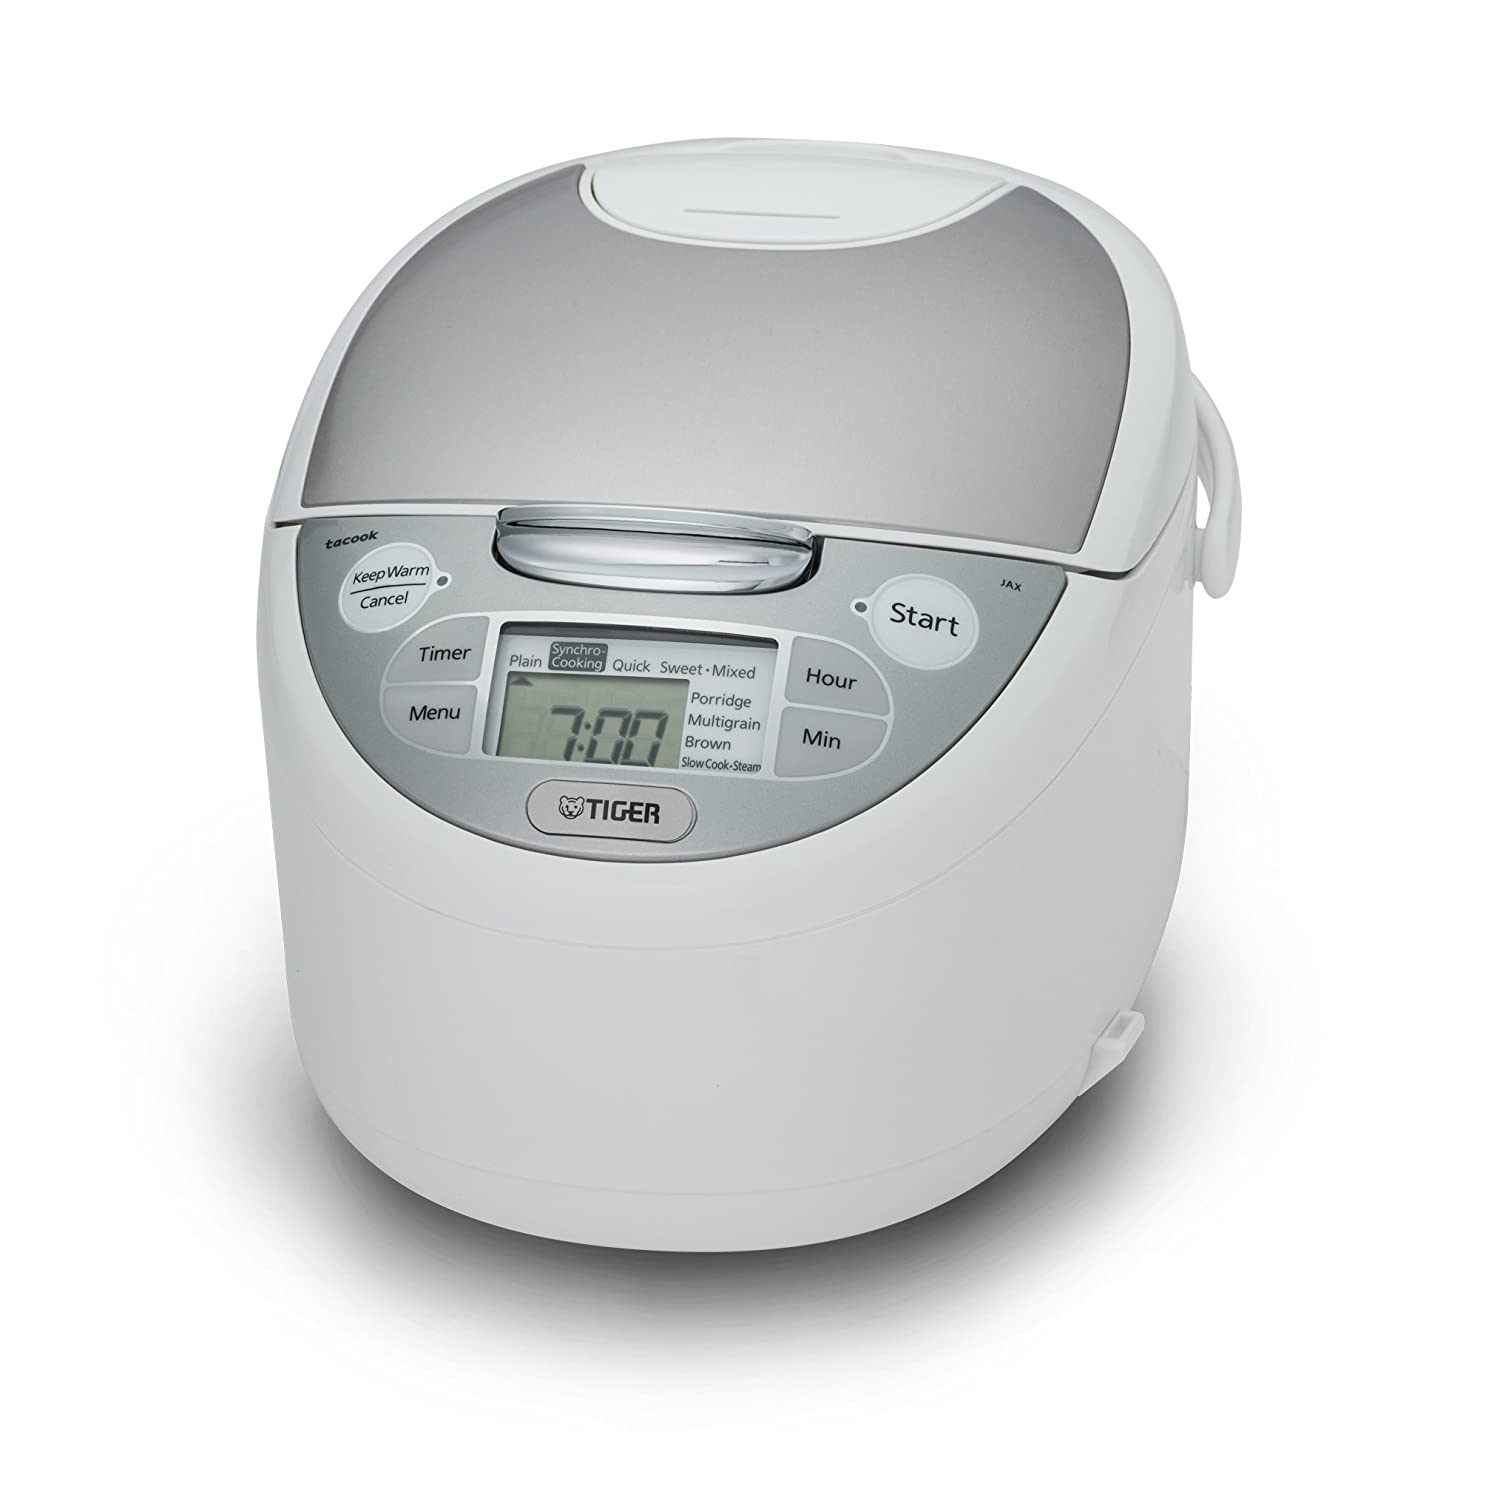 Tiger JAX-S10U-WY 5.5-Cup (Uncooked) Micom Rice Cooker & Warmer, Steamer, and Slow Cooker Tiger Corporation